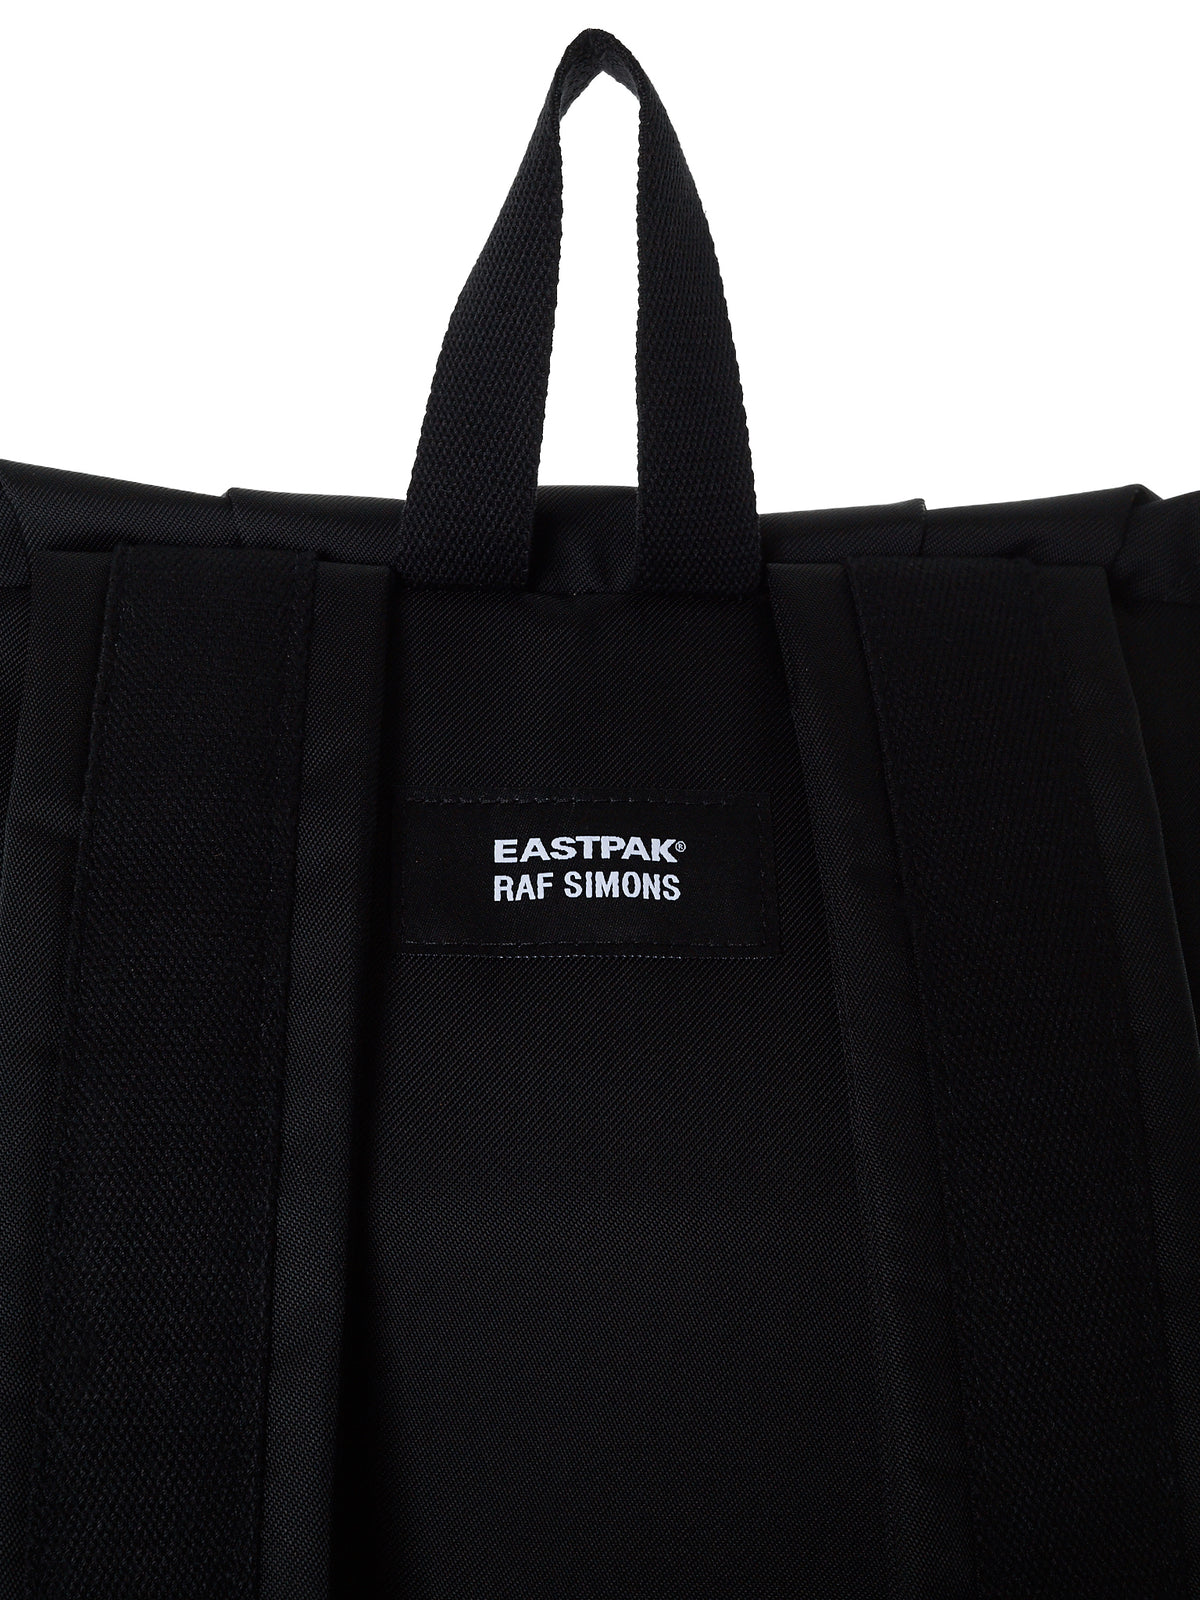 Raf Simons x Eastpak® Backpack - Hlorenzo Detail 1